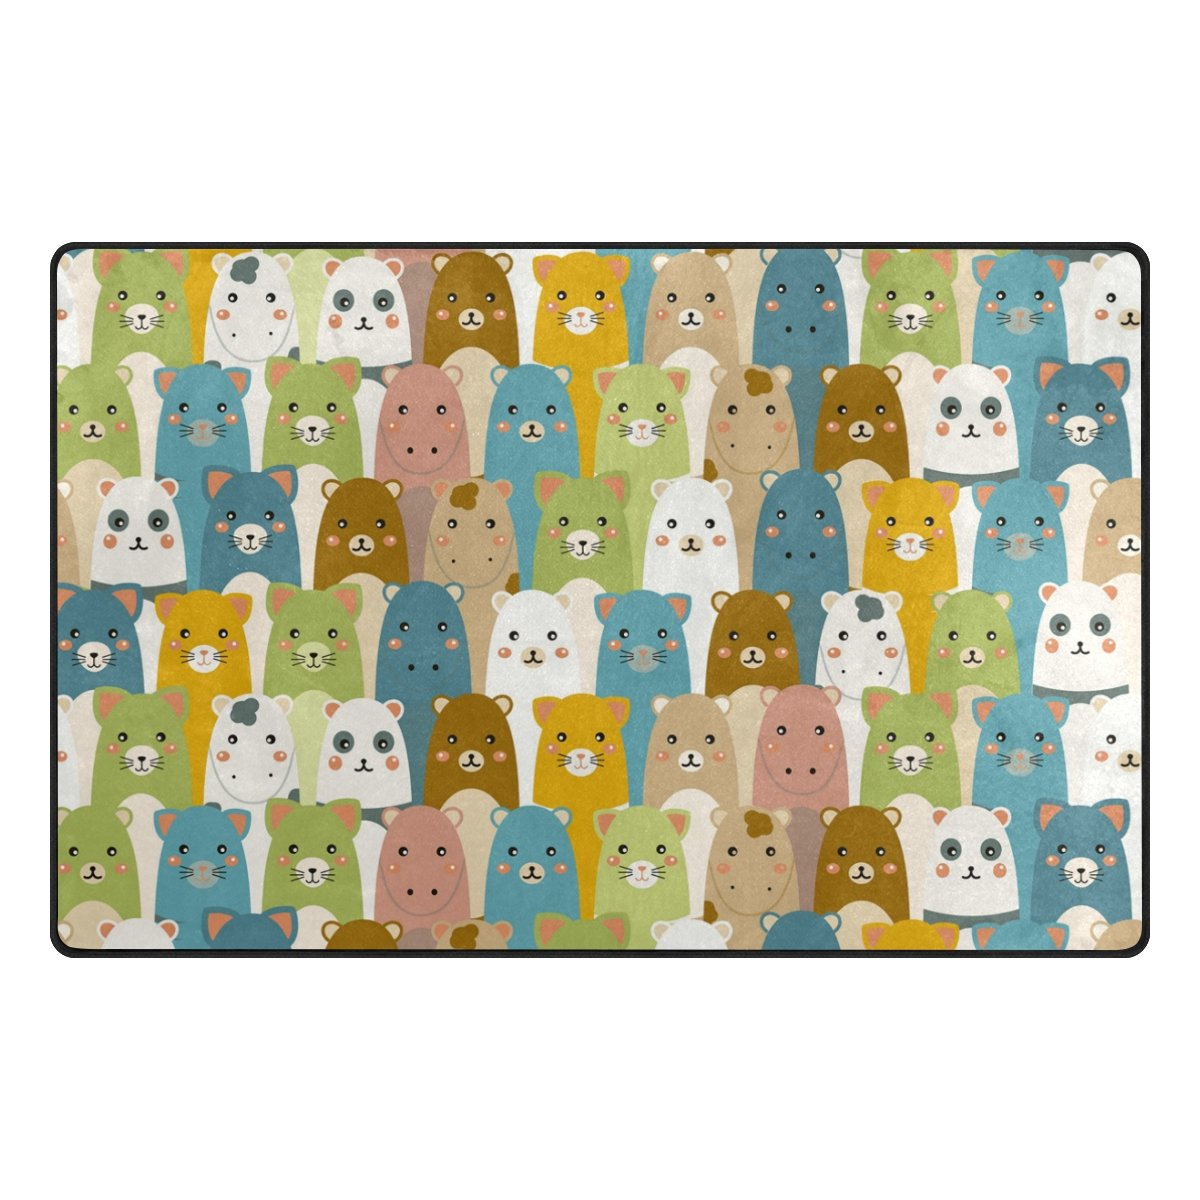 Top Carpenter Cute Animals Doodle Art Area Rug Pad - 60 x 39 inch - 100% Light Weight Polyester Fabric for Living - Bedroom